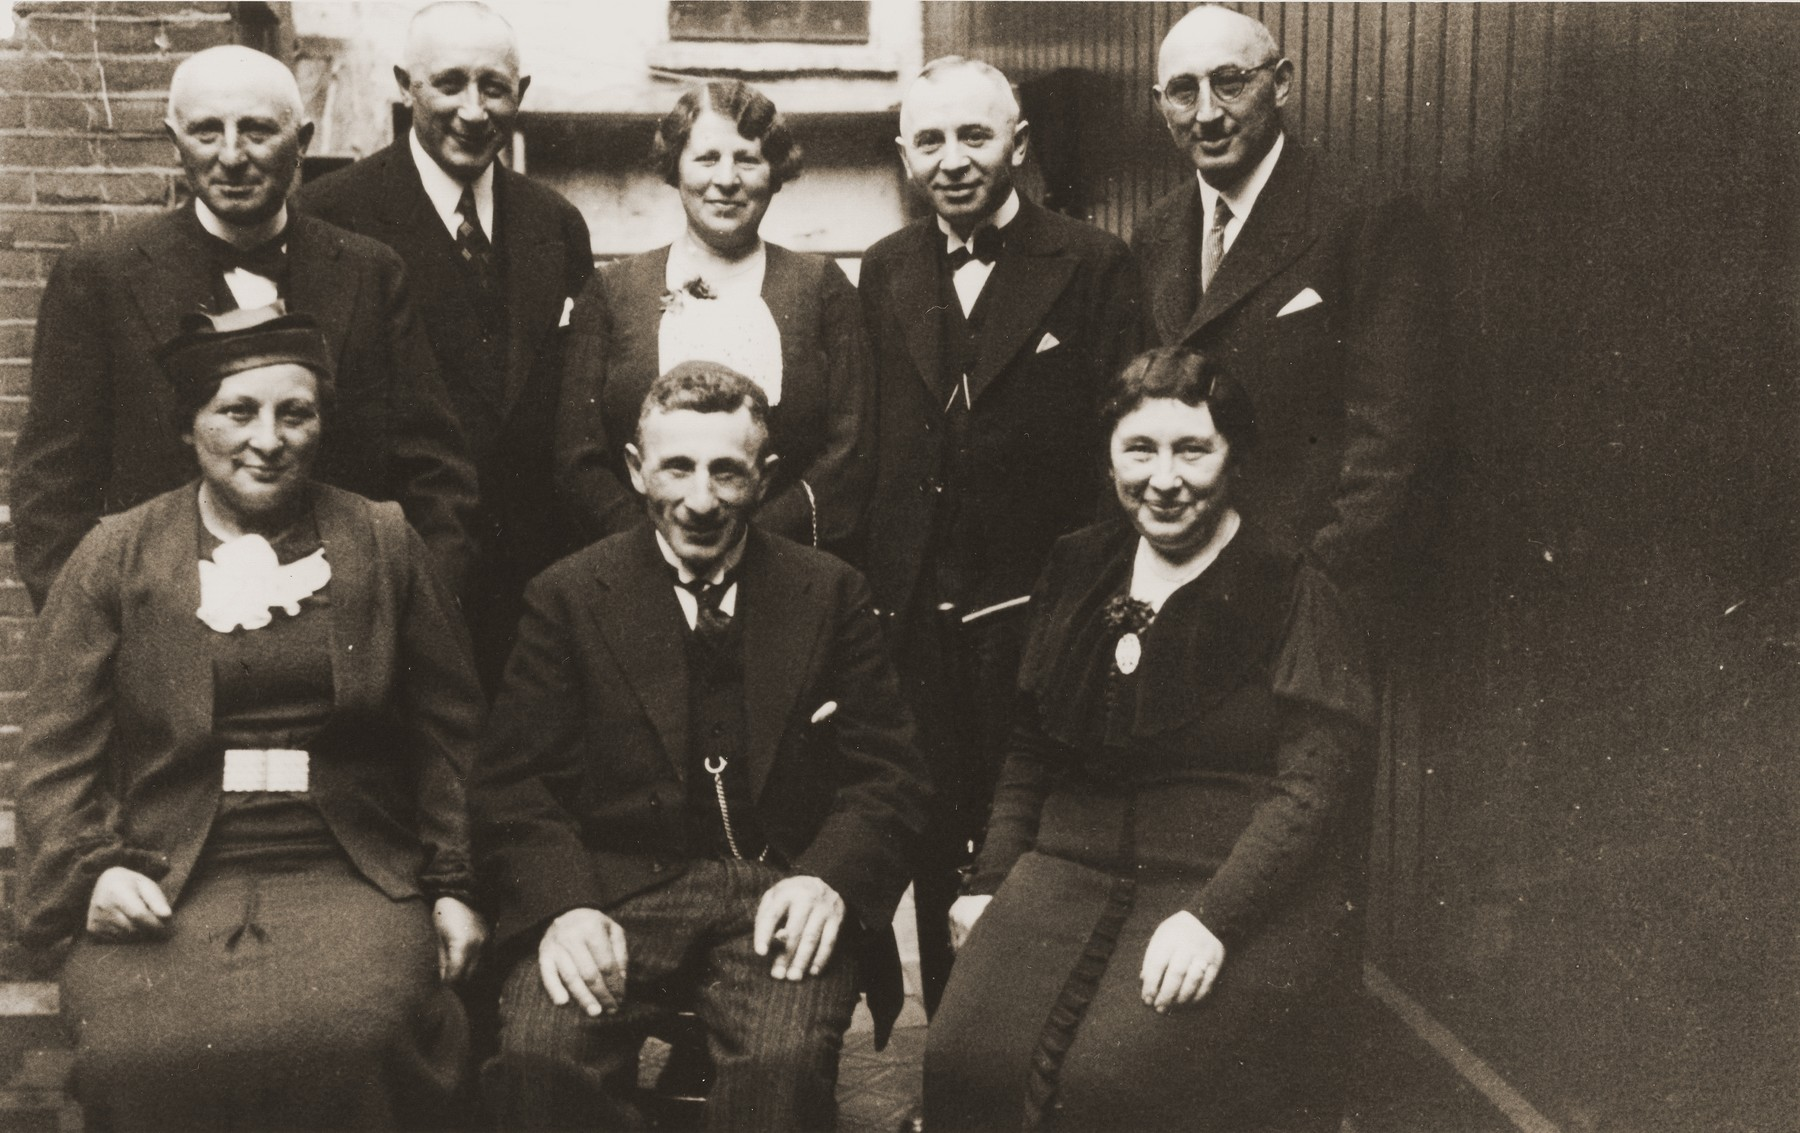 Portrait of the Meijer family in Boekelo.  Among those pictured are Louis Meijer (seated in the center); Joseph Meijer (top left); and Na Meijer Berg (top row, center).